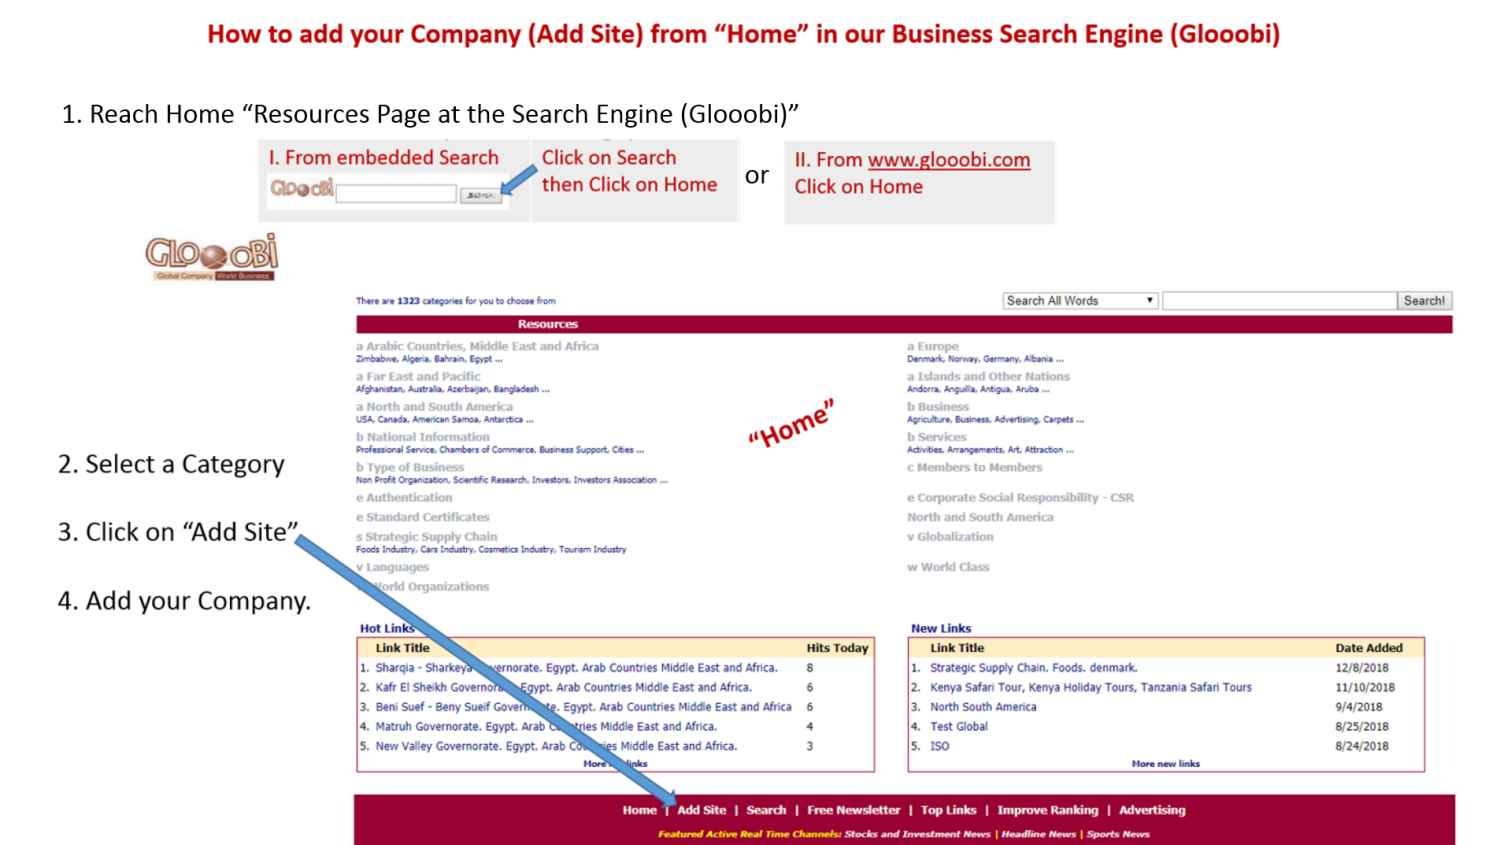 Add Site to Interconsult21's Business Search Engine - Glooobi